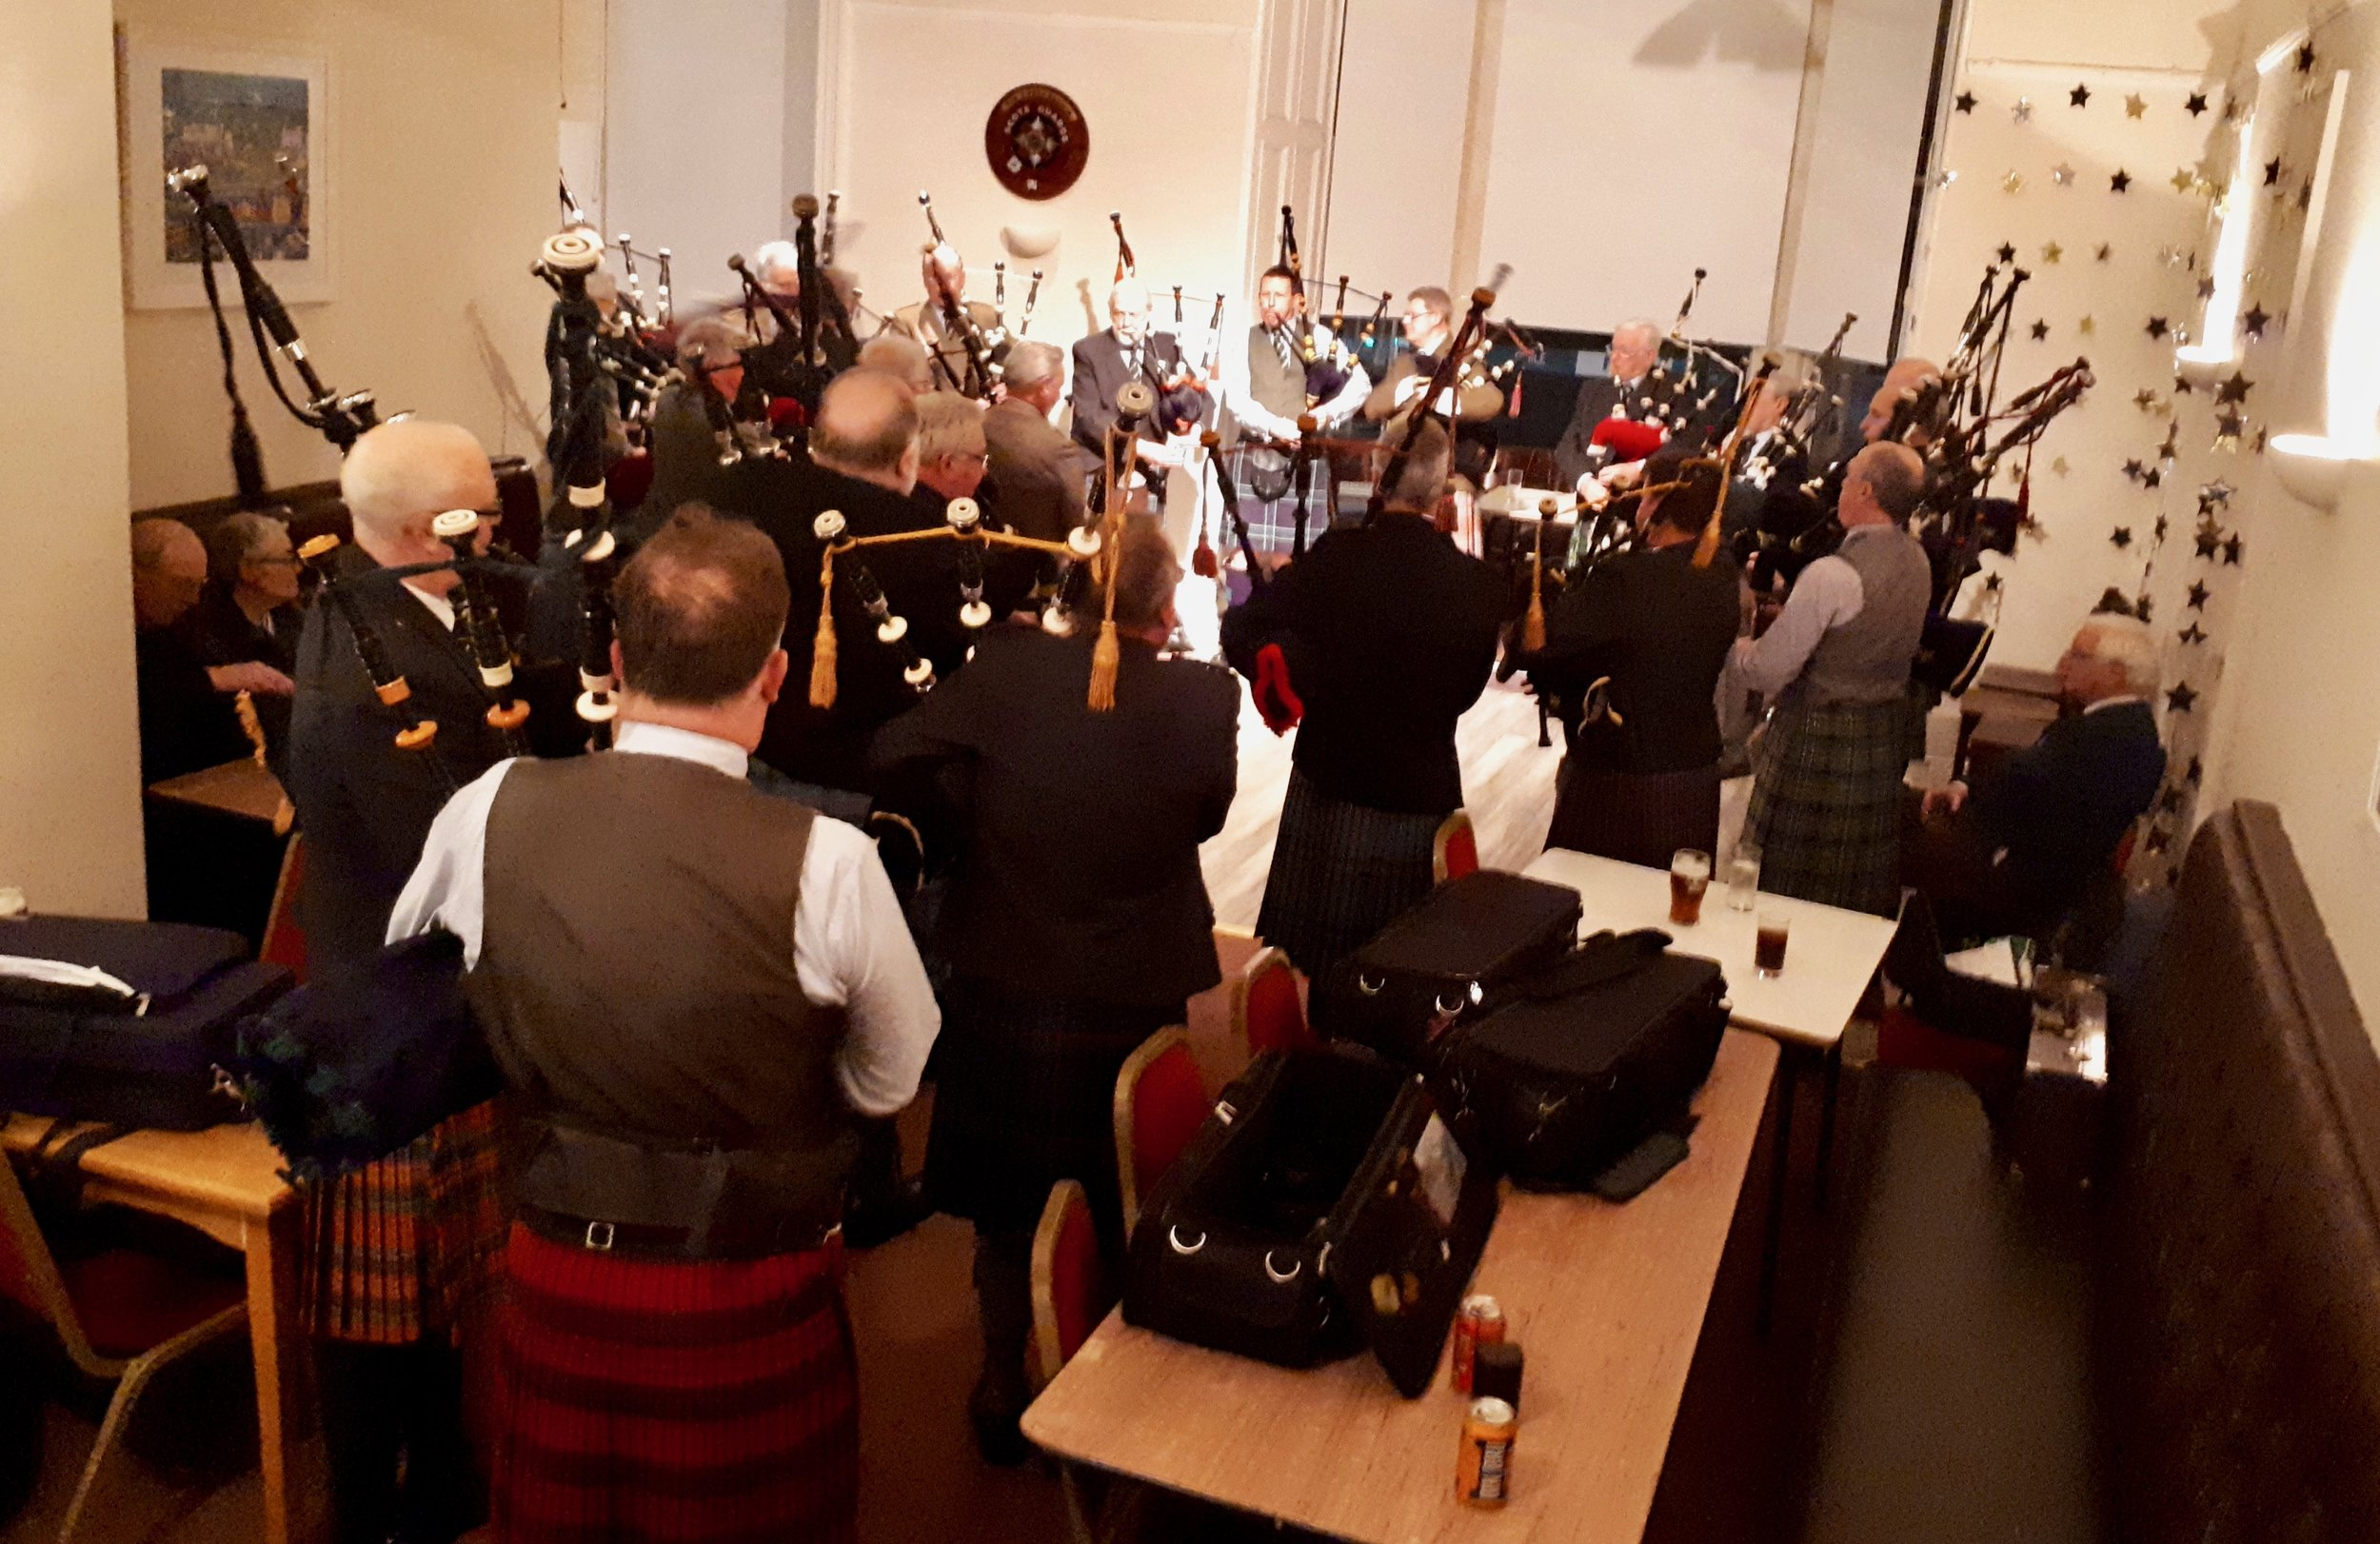 Around 25 pipers on the floor